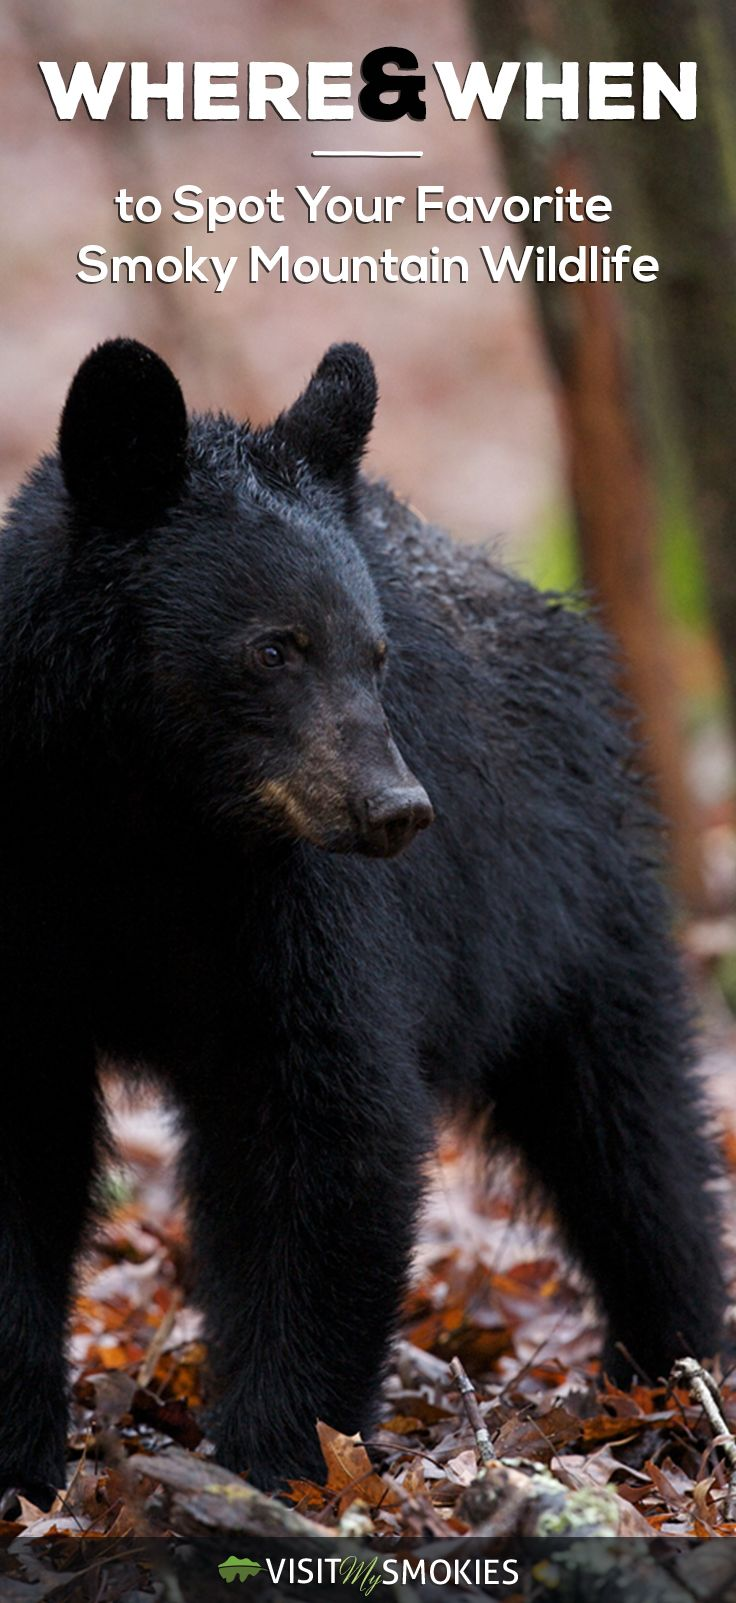 Where & when to spot your favorite Smoky Mountain wildlife